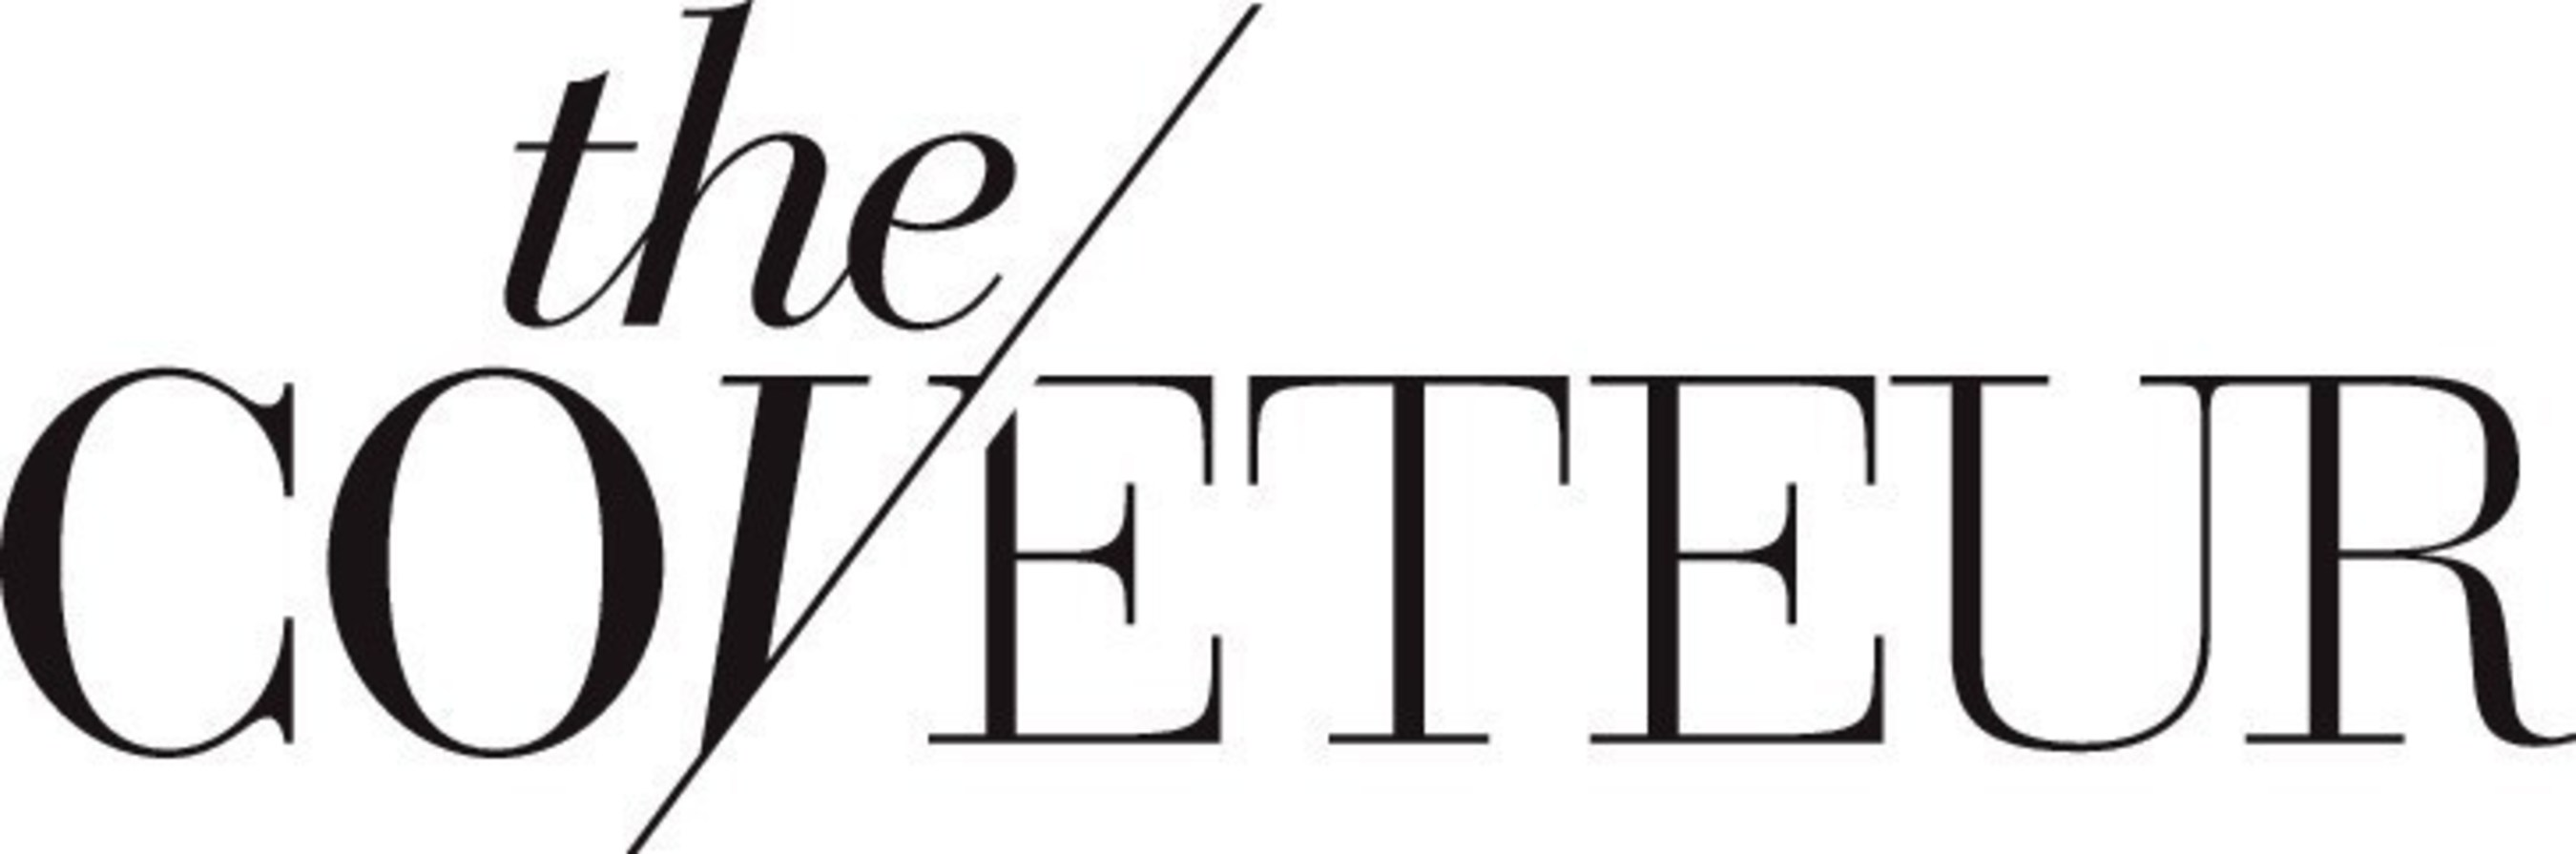 The Coveteur Expands Editorial and Digital Teams with Two Key Executive  Hires from Condé Nast and Hearst